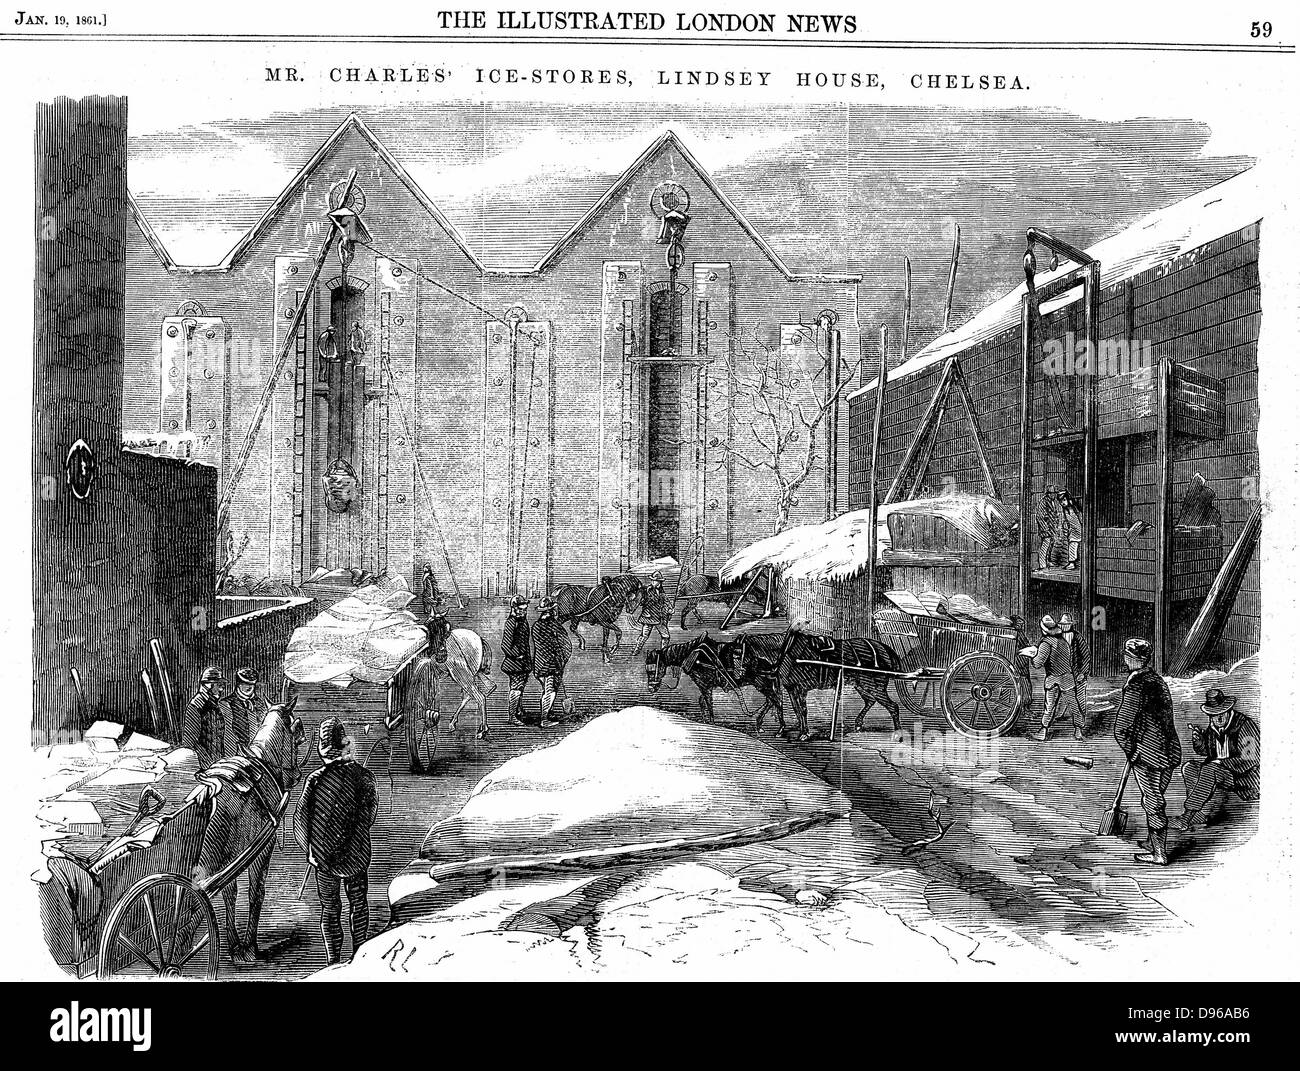 Ice being stacked in insulated warehouses in January to be stored for summer use. Charles's Ice Store, Chelsea, - Stock Image